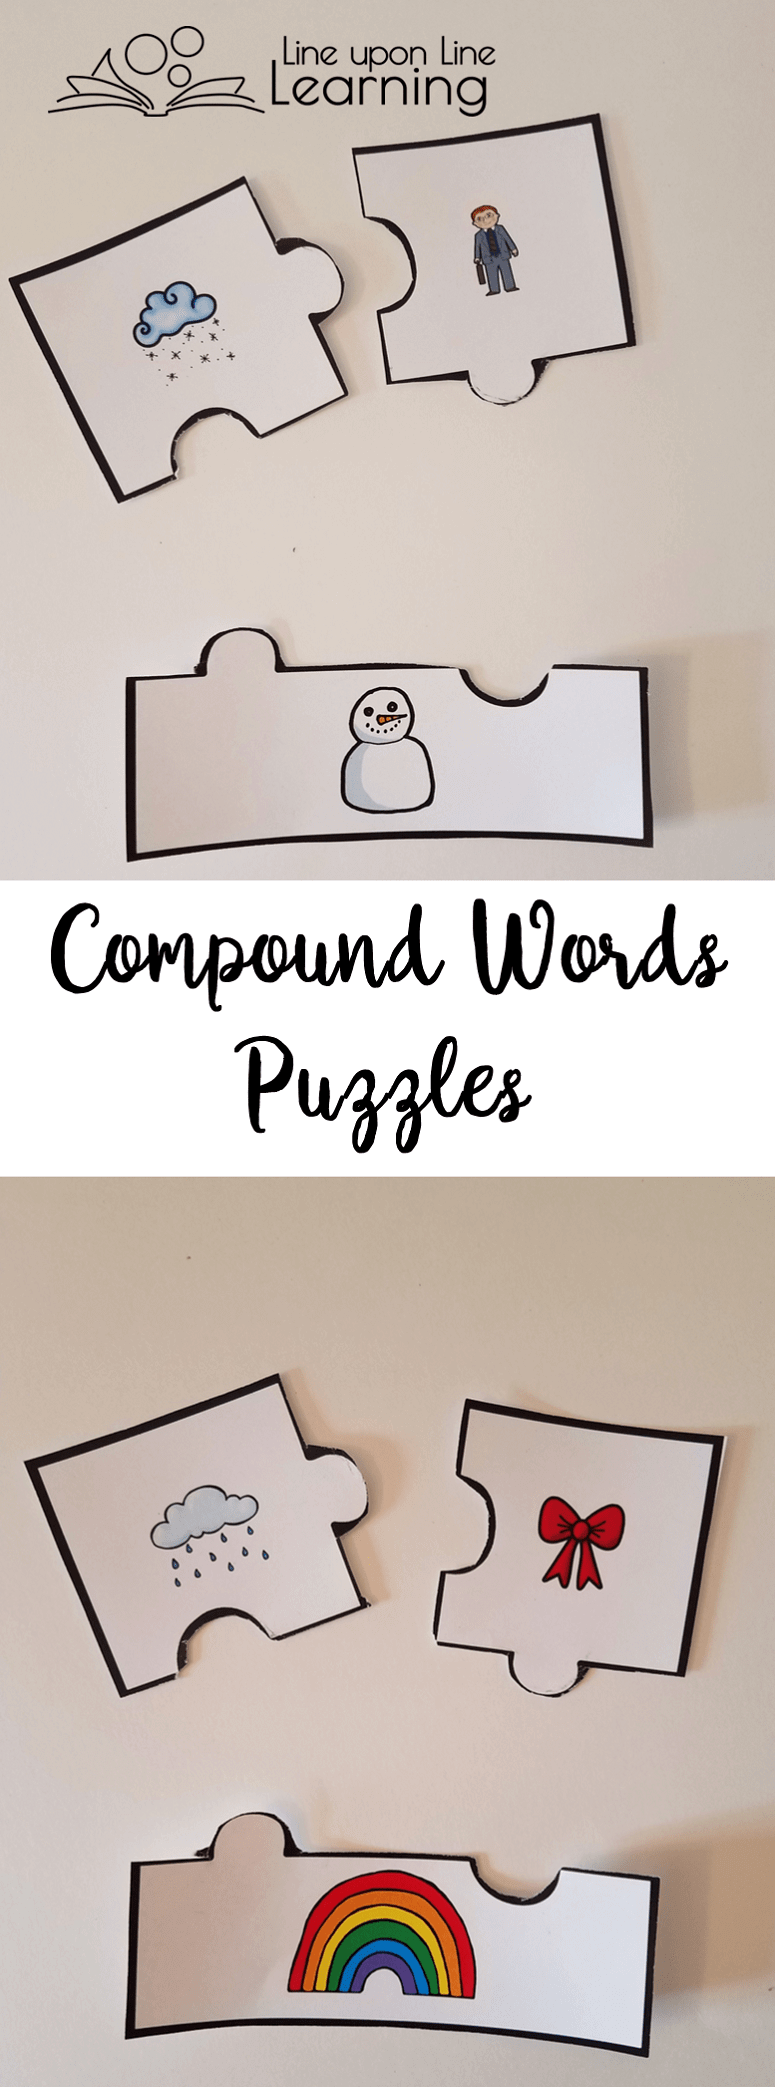 We pieced together compound words by finding the two parts and the whole in the compound word puzzles. A great pre-reading activity!